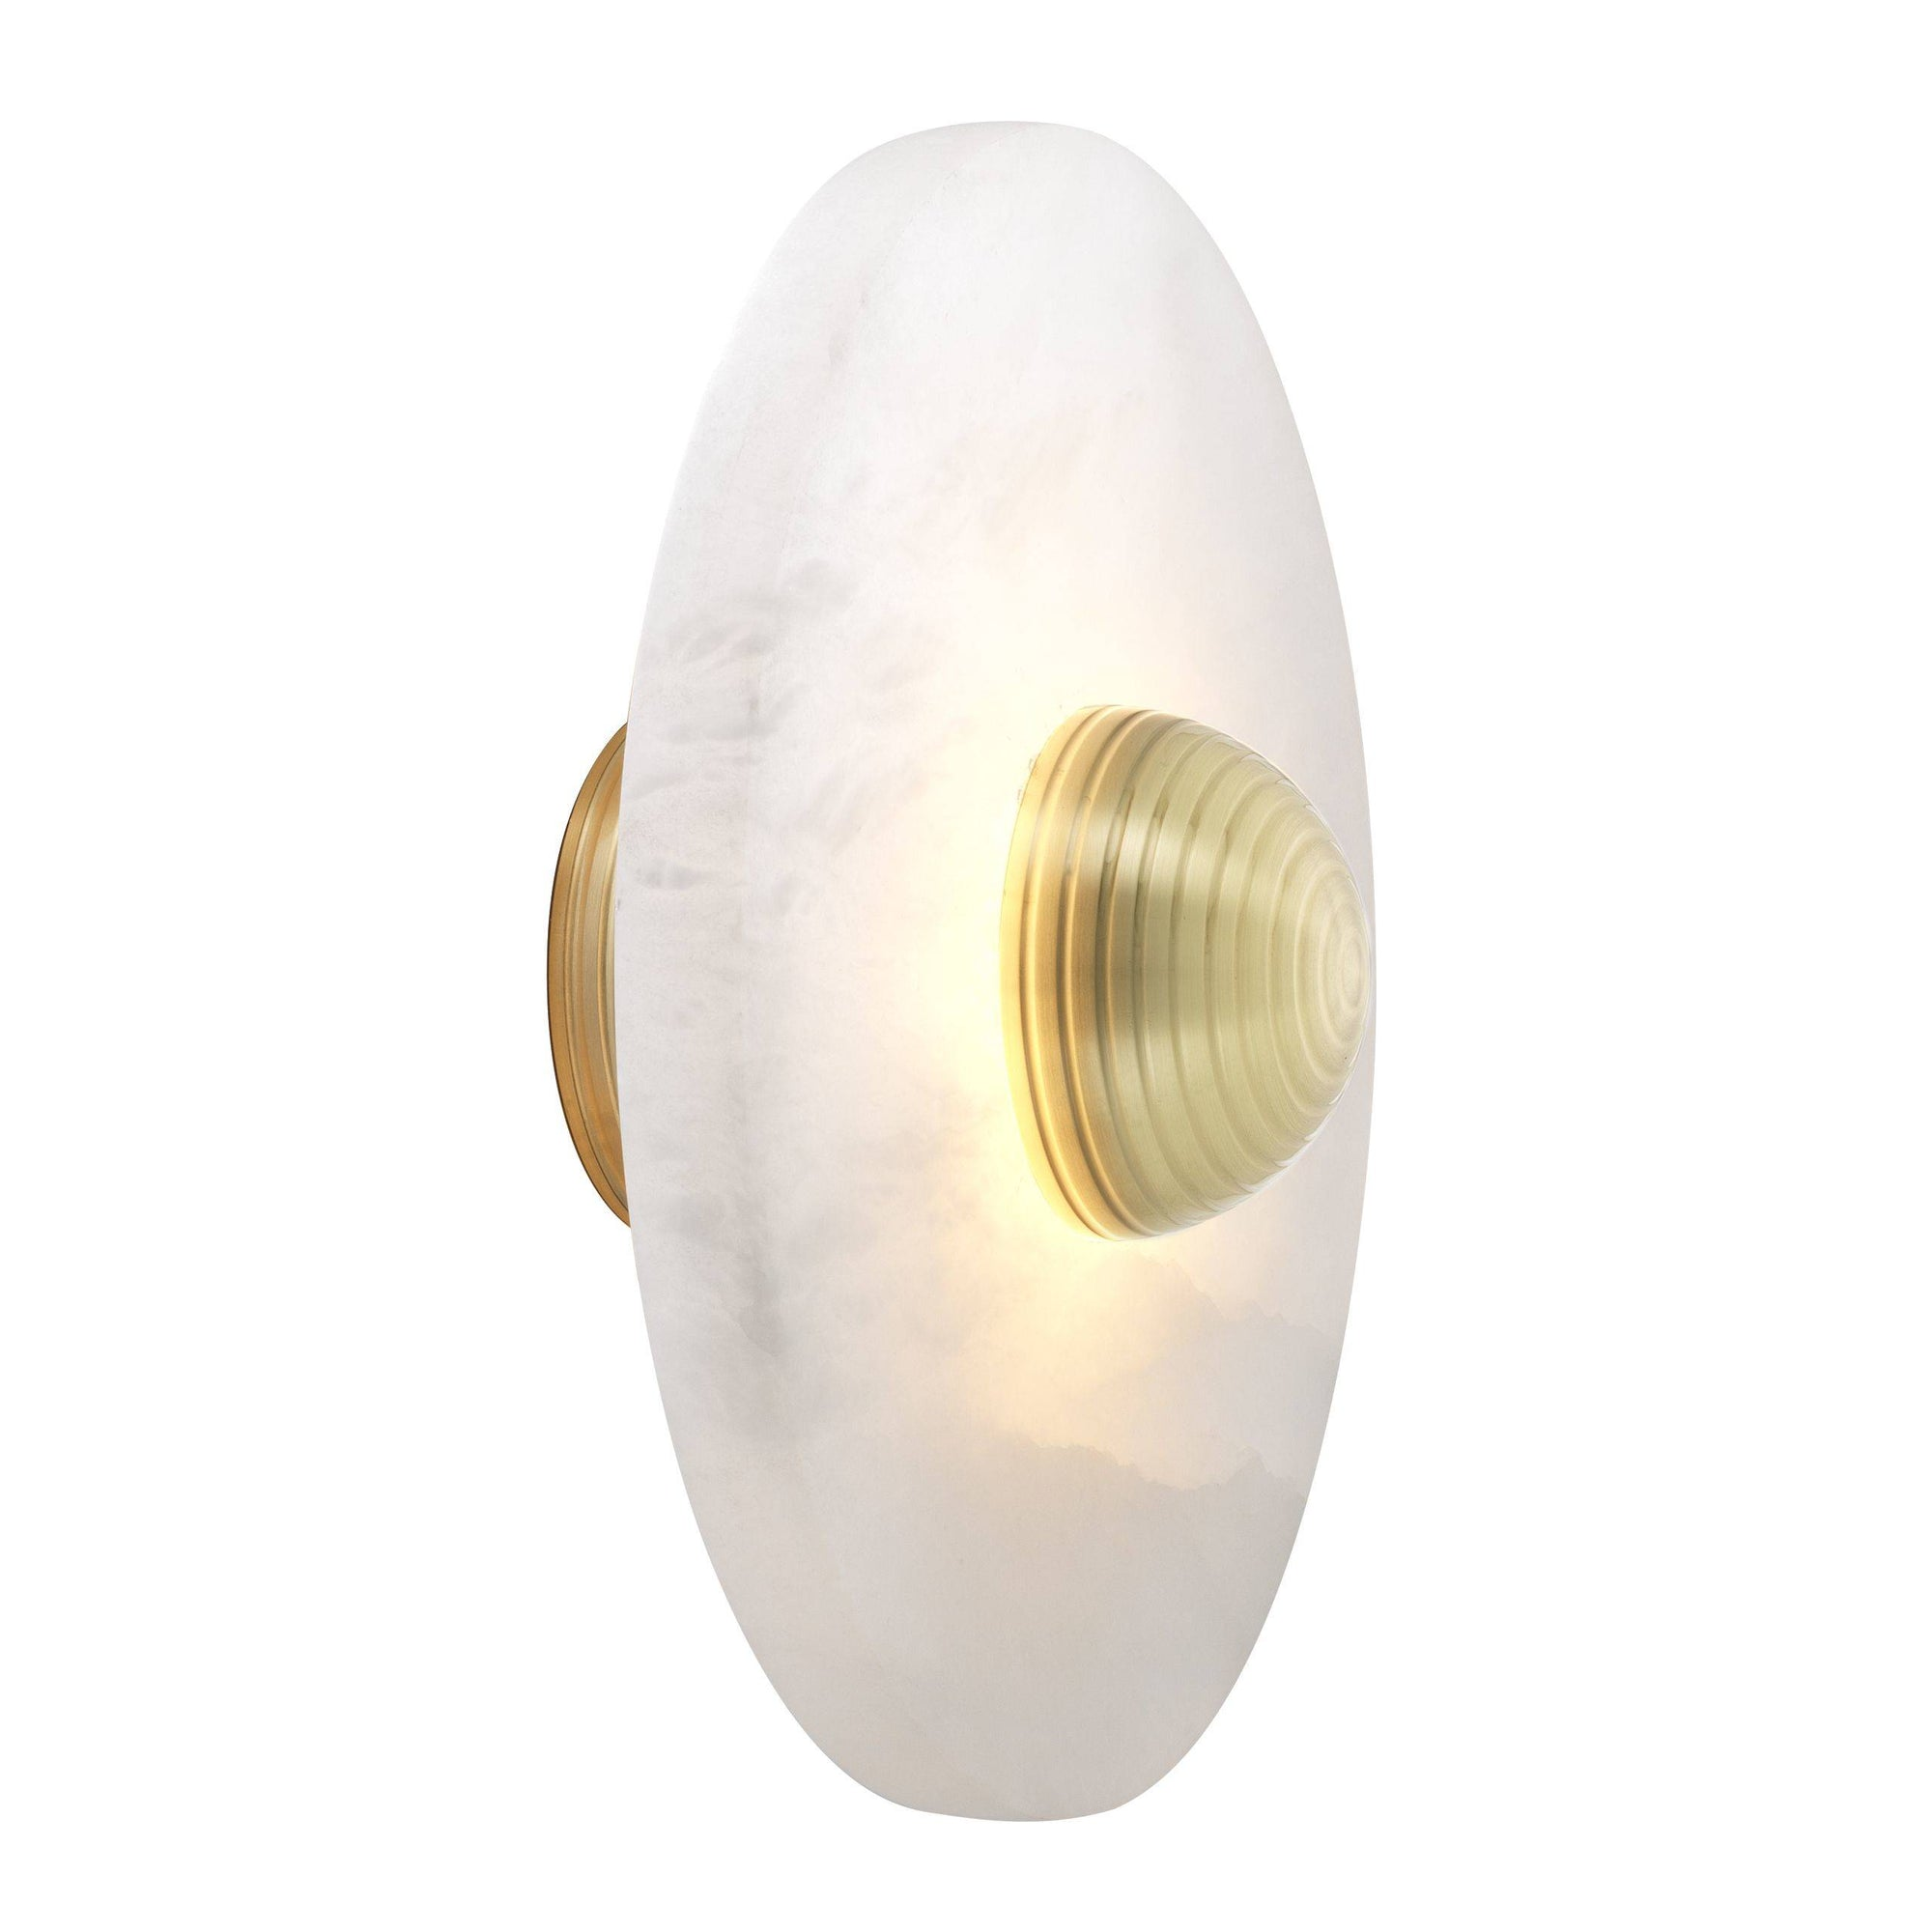 Alabaster Disc Настенный светильник - s | Eichholtz Nomad | OROA Luxury Lighting